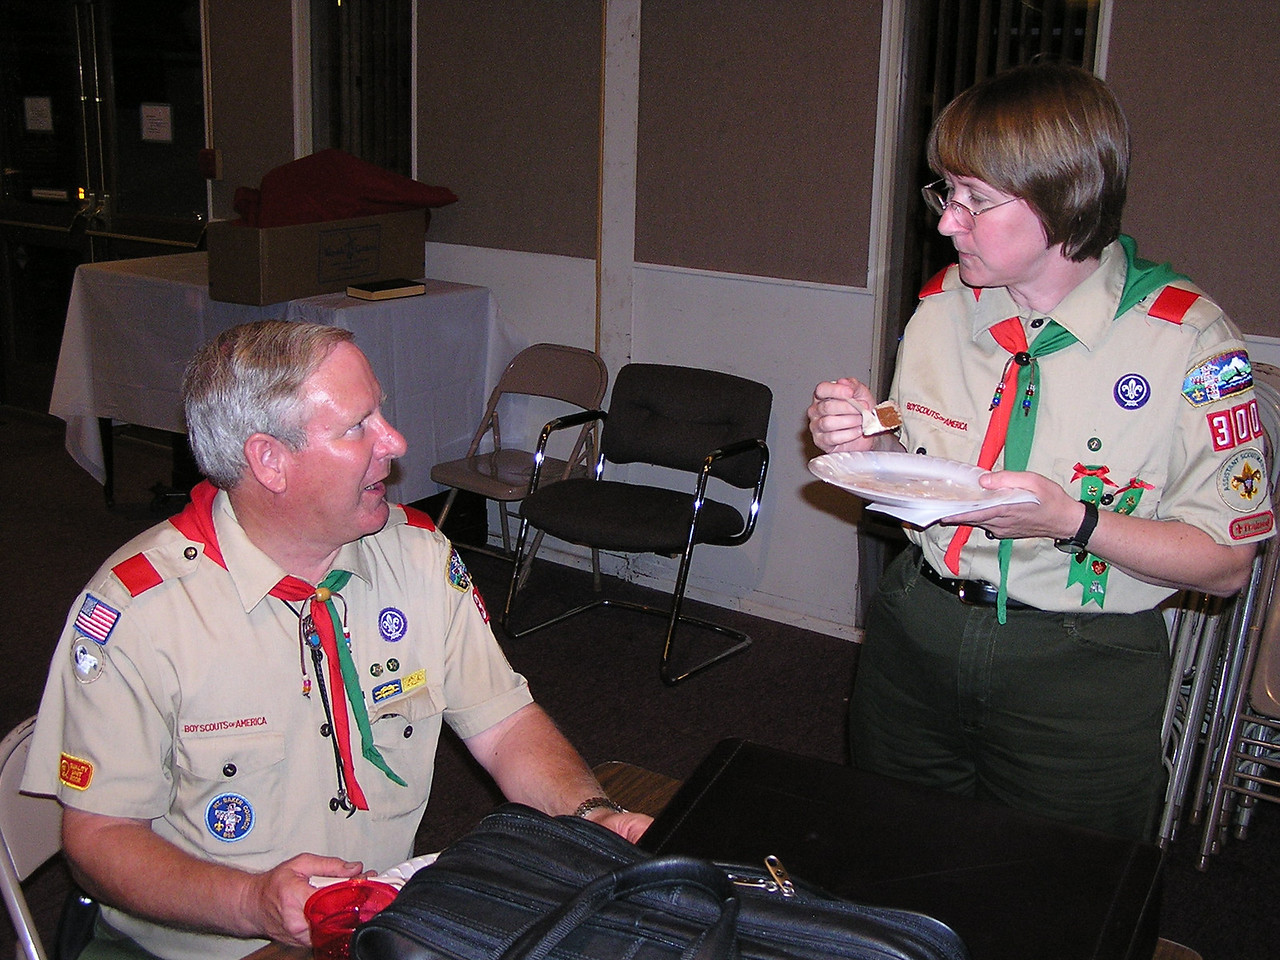 03-09-08 Kevin, Scouts 032